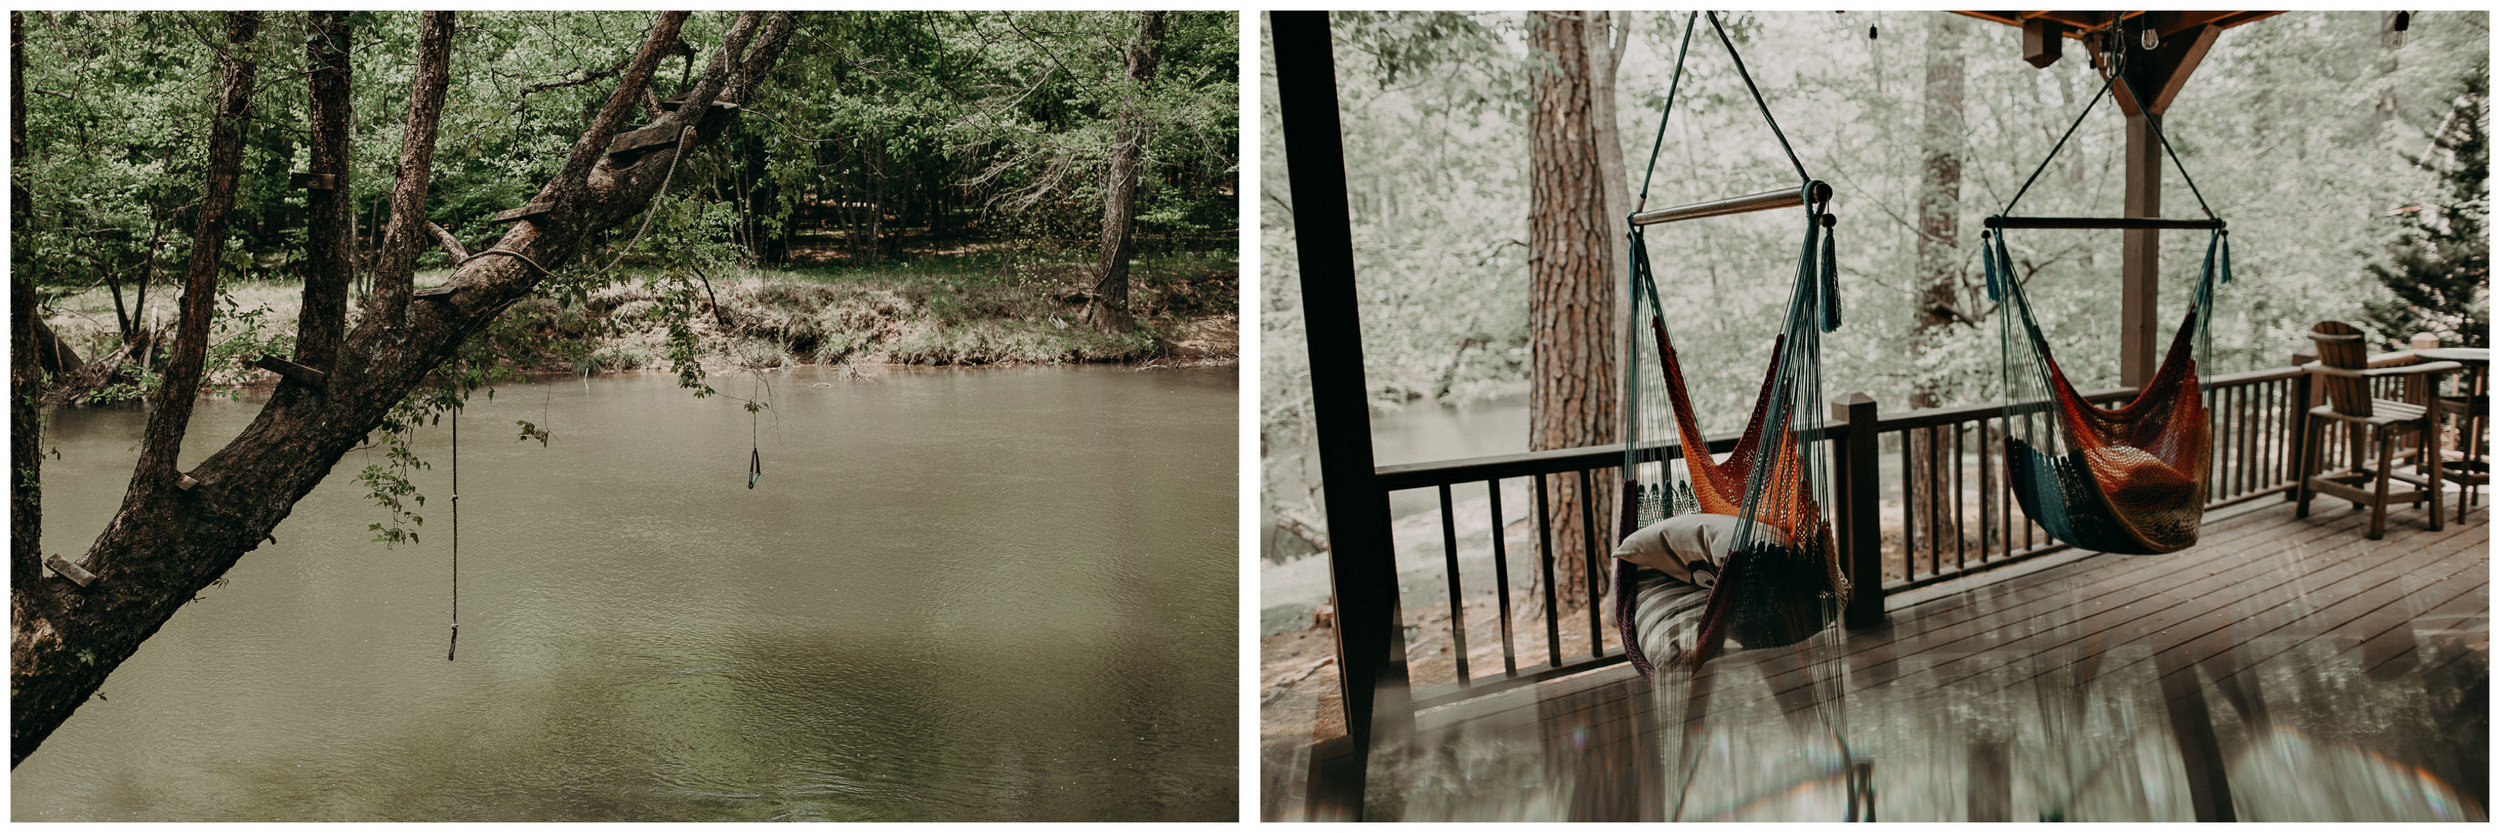 3 - Forest wedding boho enchanched fairytale wedding atlanta - ga , intimate, elopement, nature, greens, good vibes. Aline Marin Photography .jpg